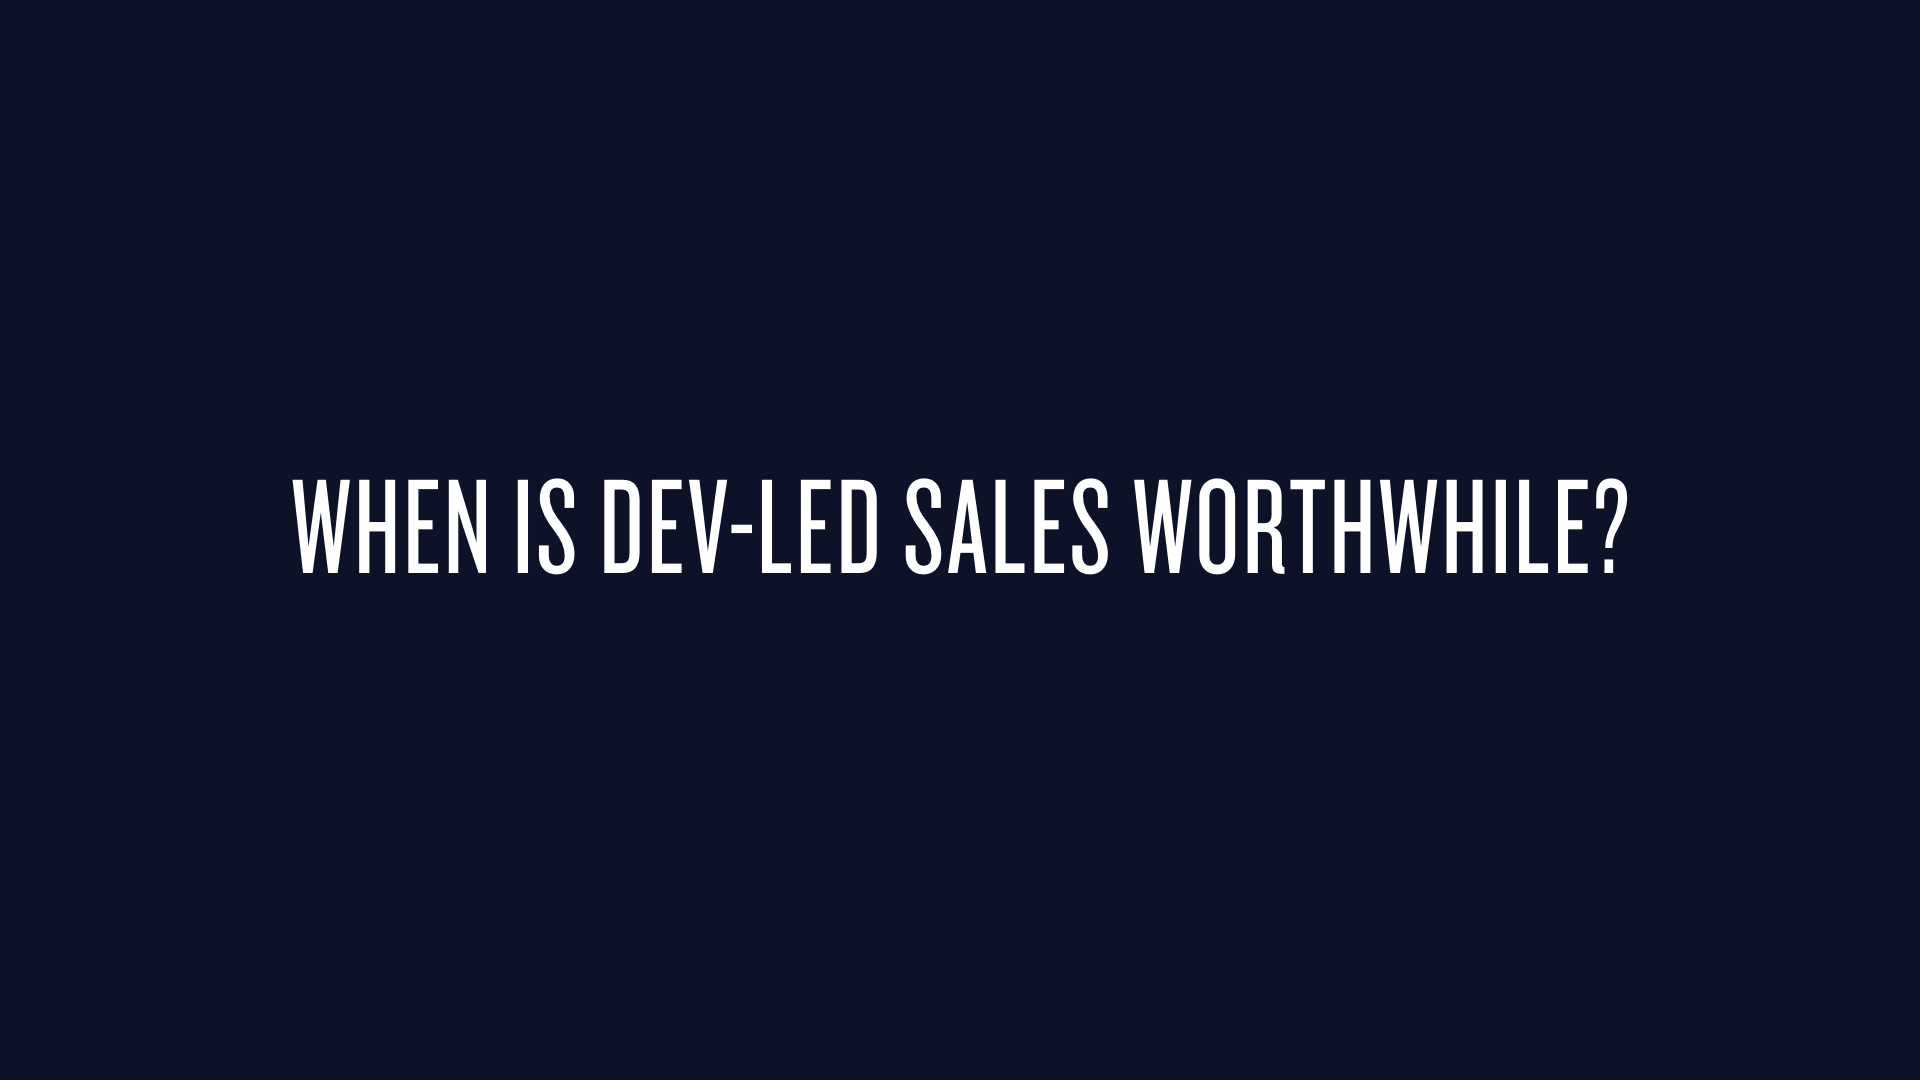 When is dev-led sales worthwhile?